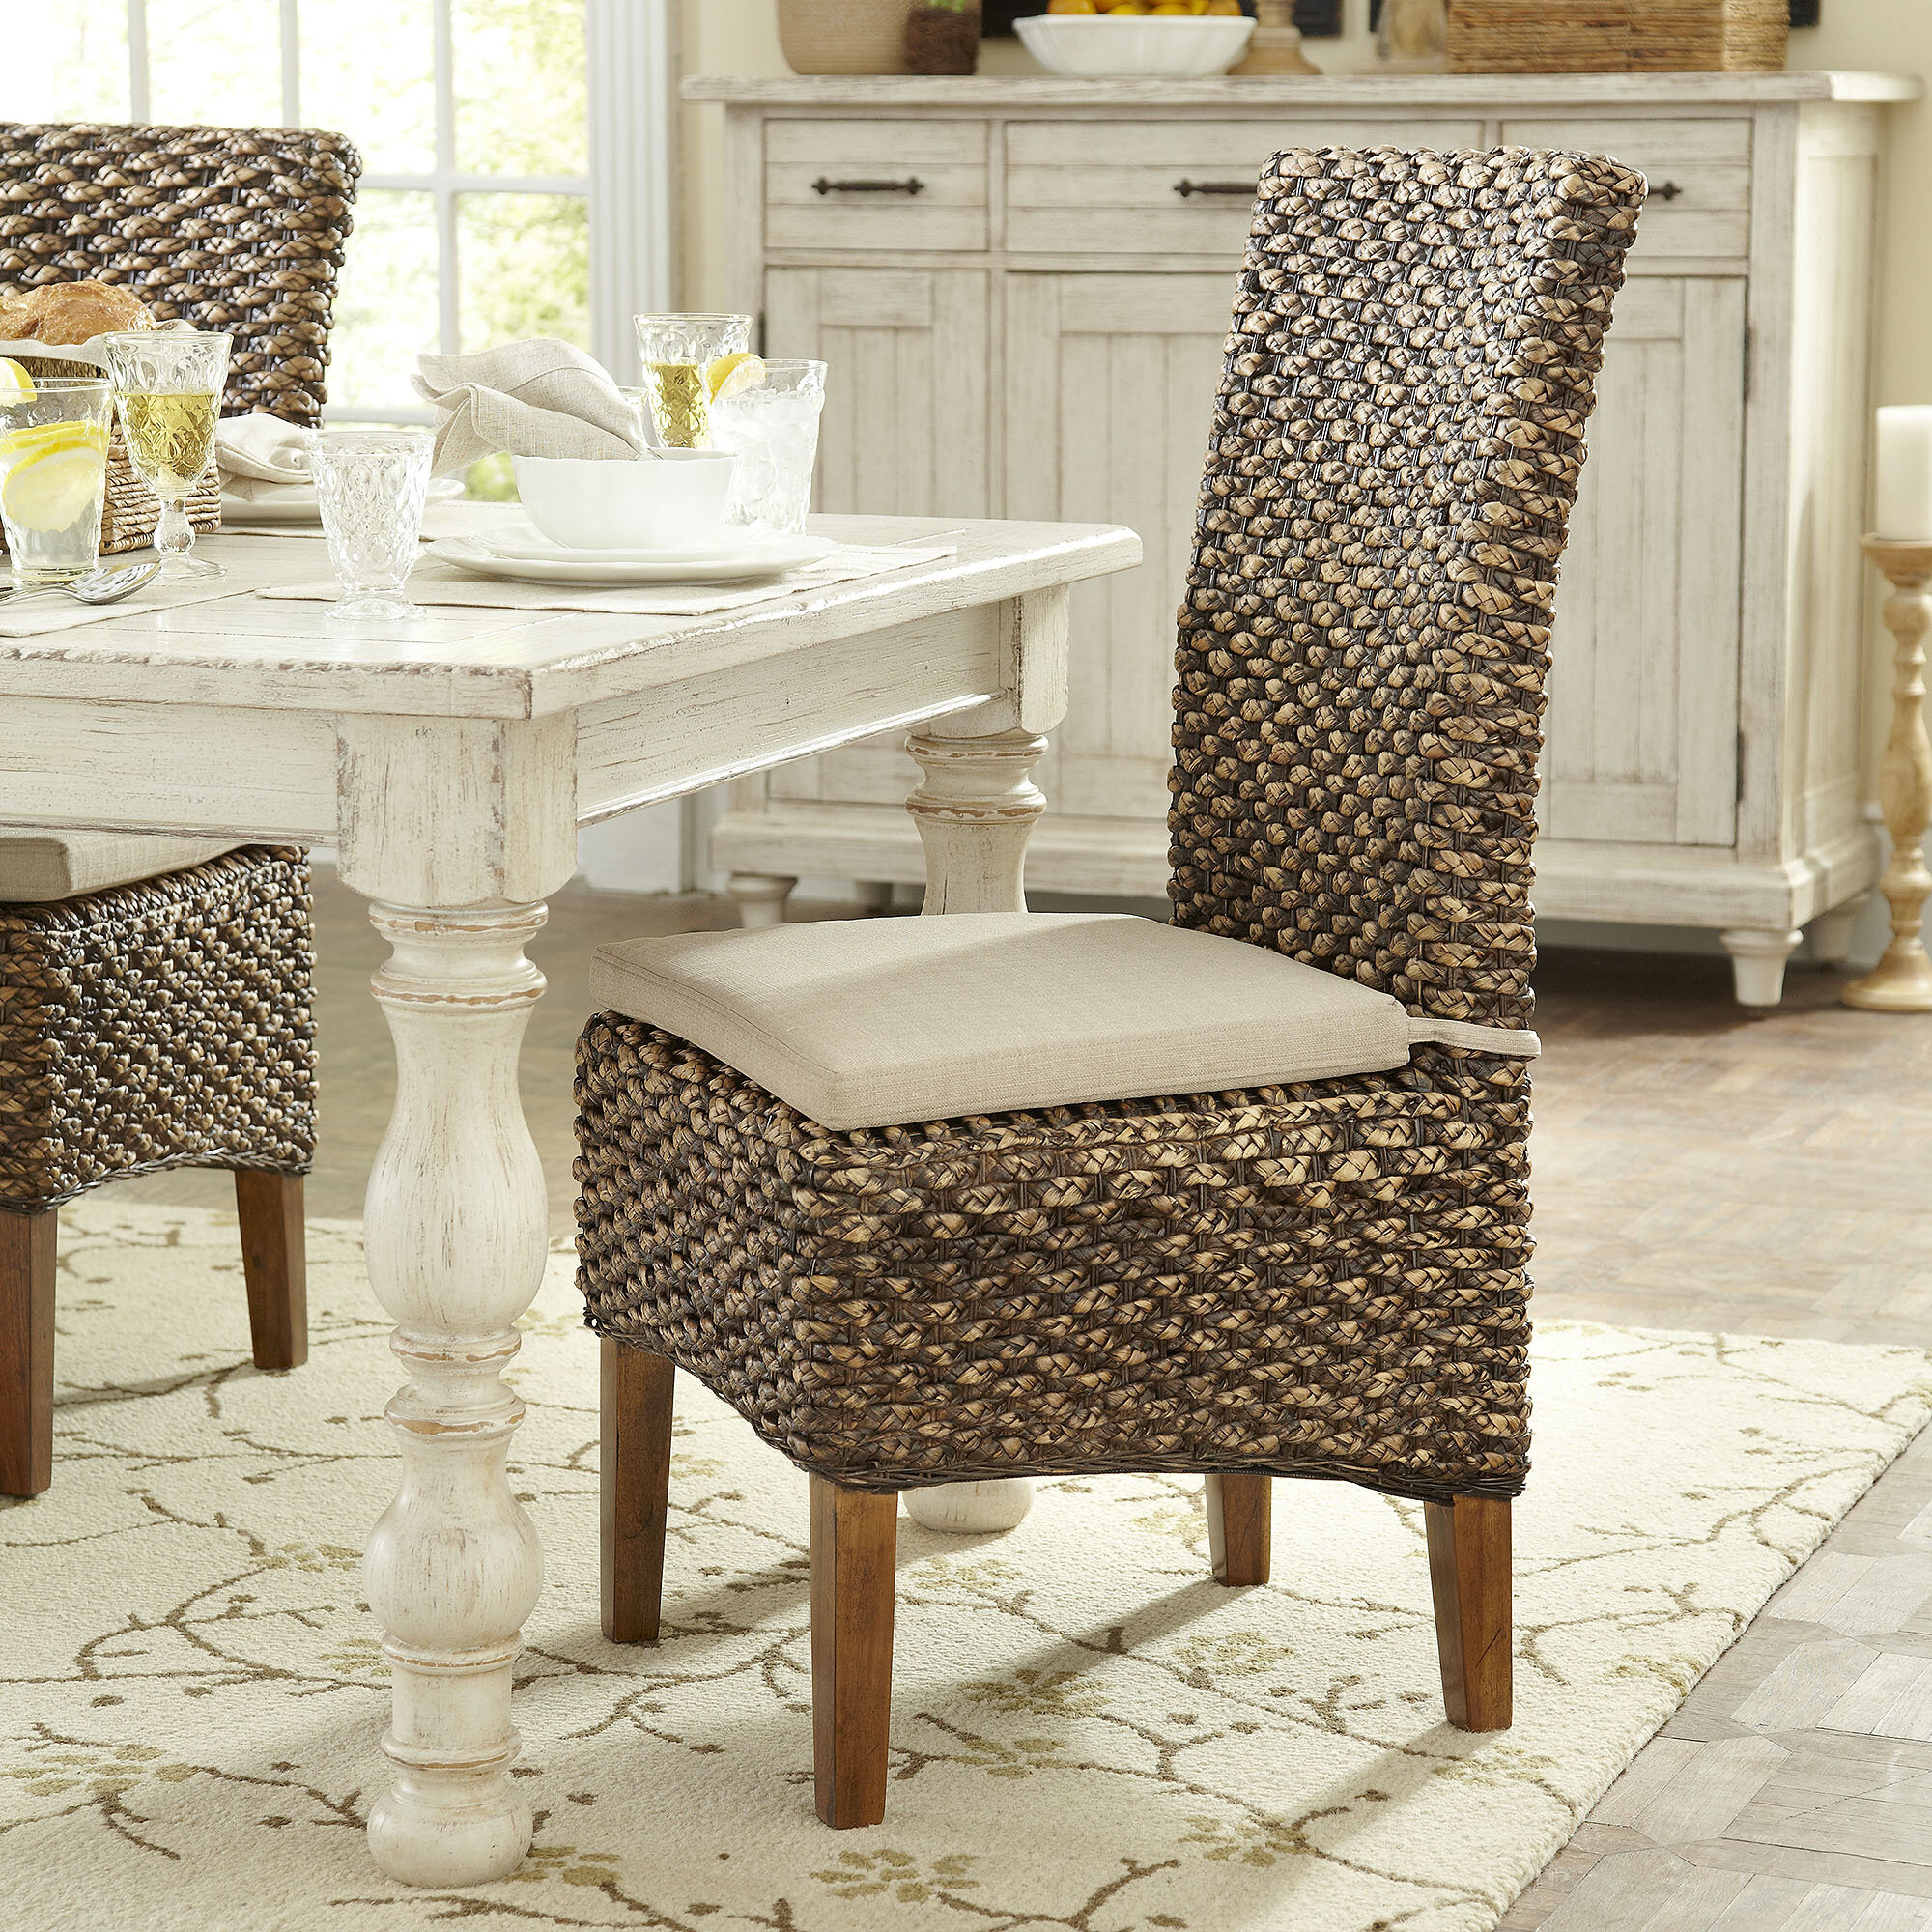 Wicker Rattan Kitchen Dining Chairs You Ll Love Wayfair Ca